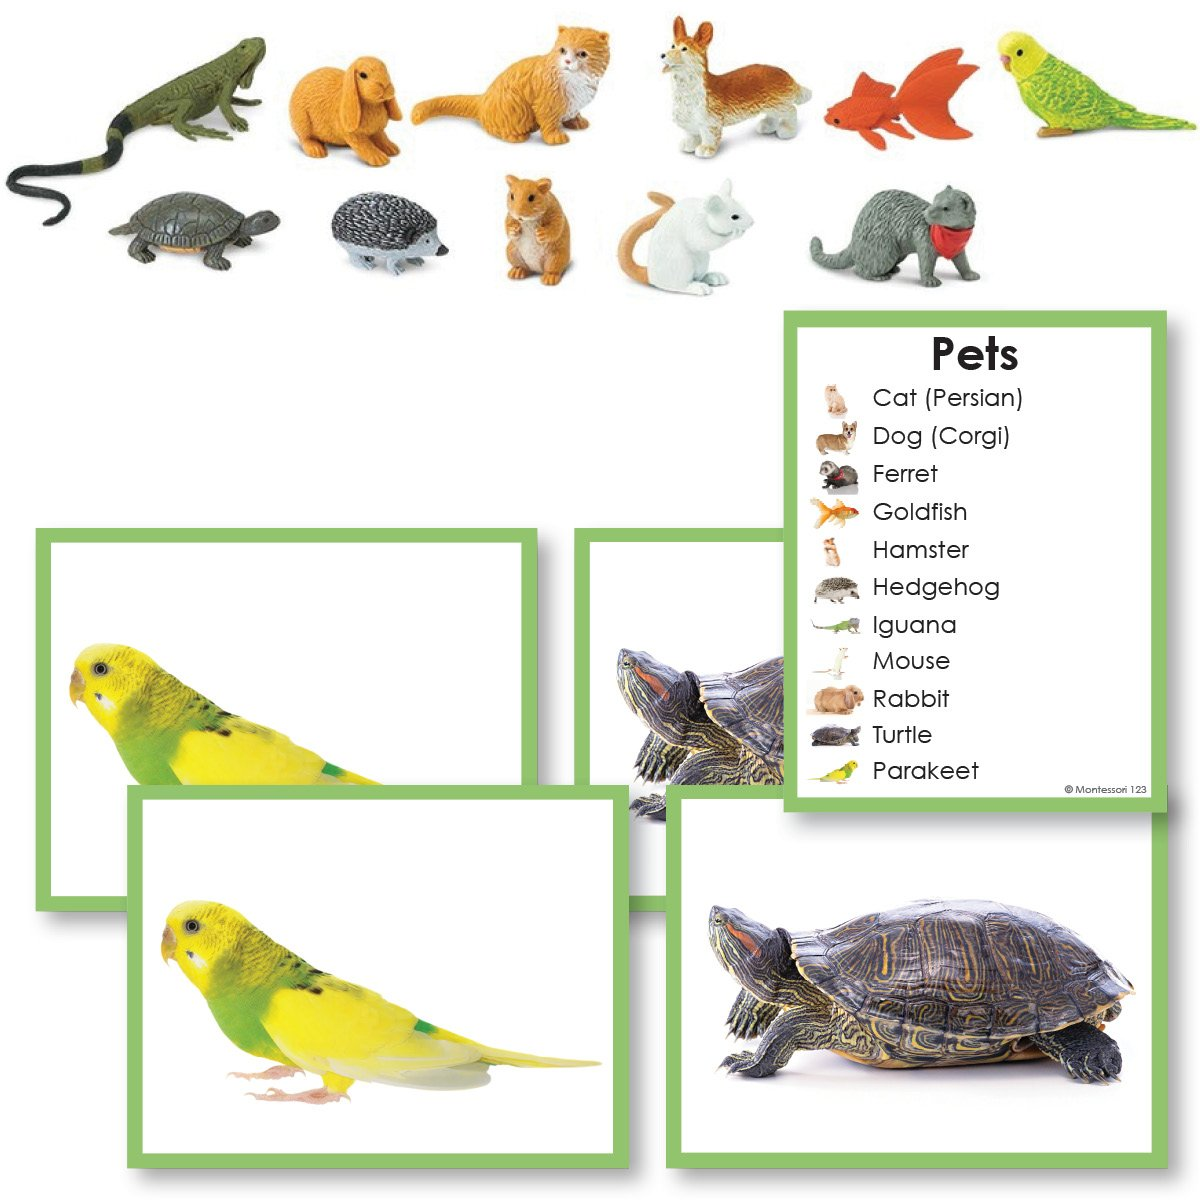 Zoology-Animal Classification/ Identification - Pets Toddler Cards With Objects